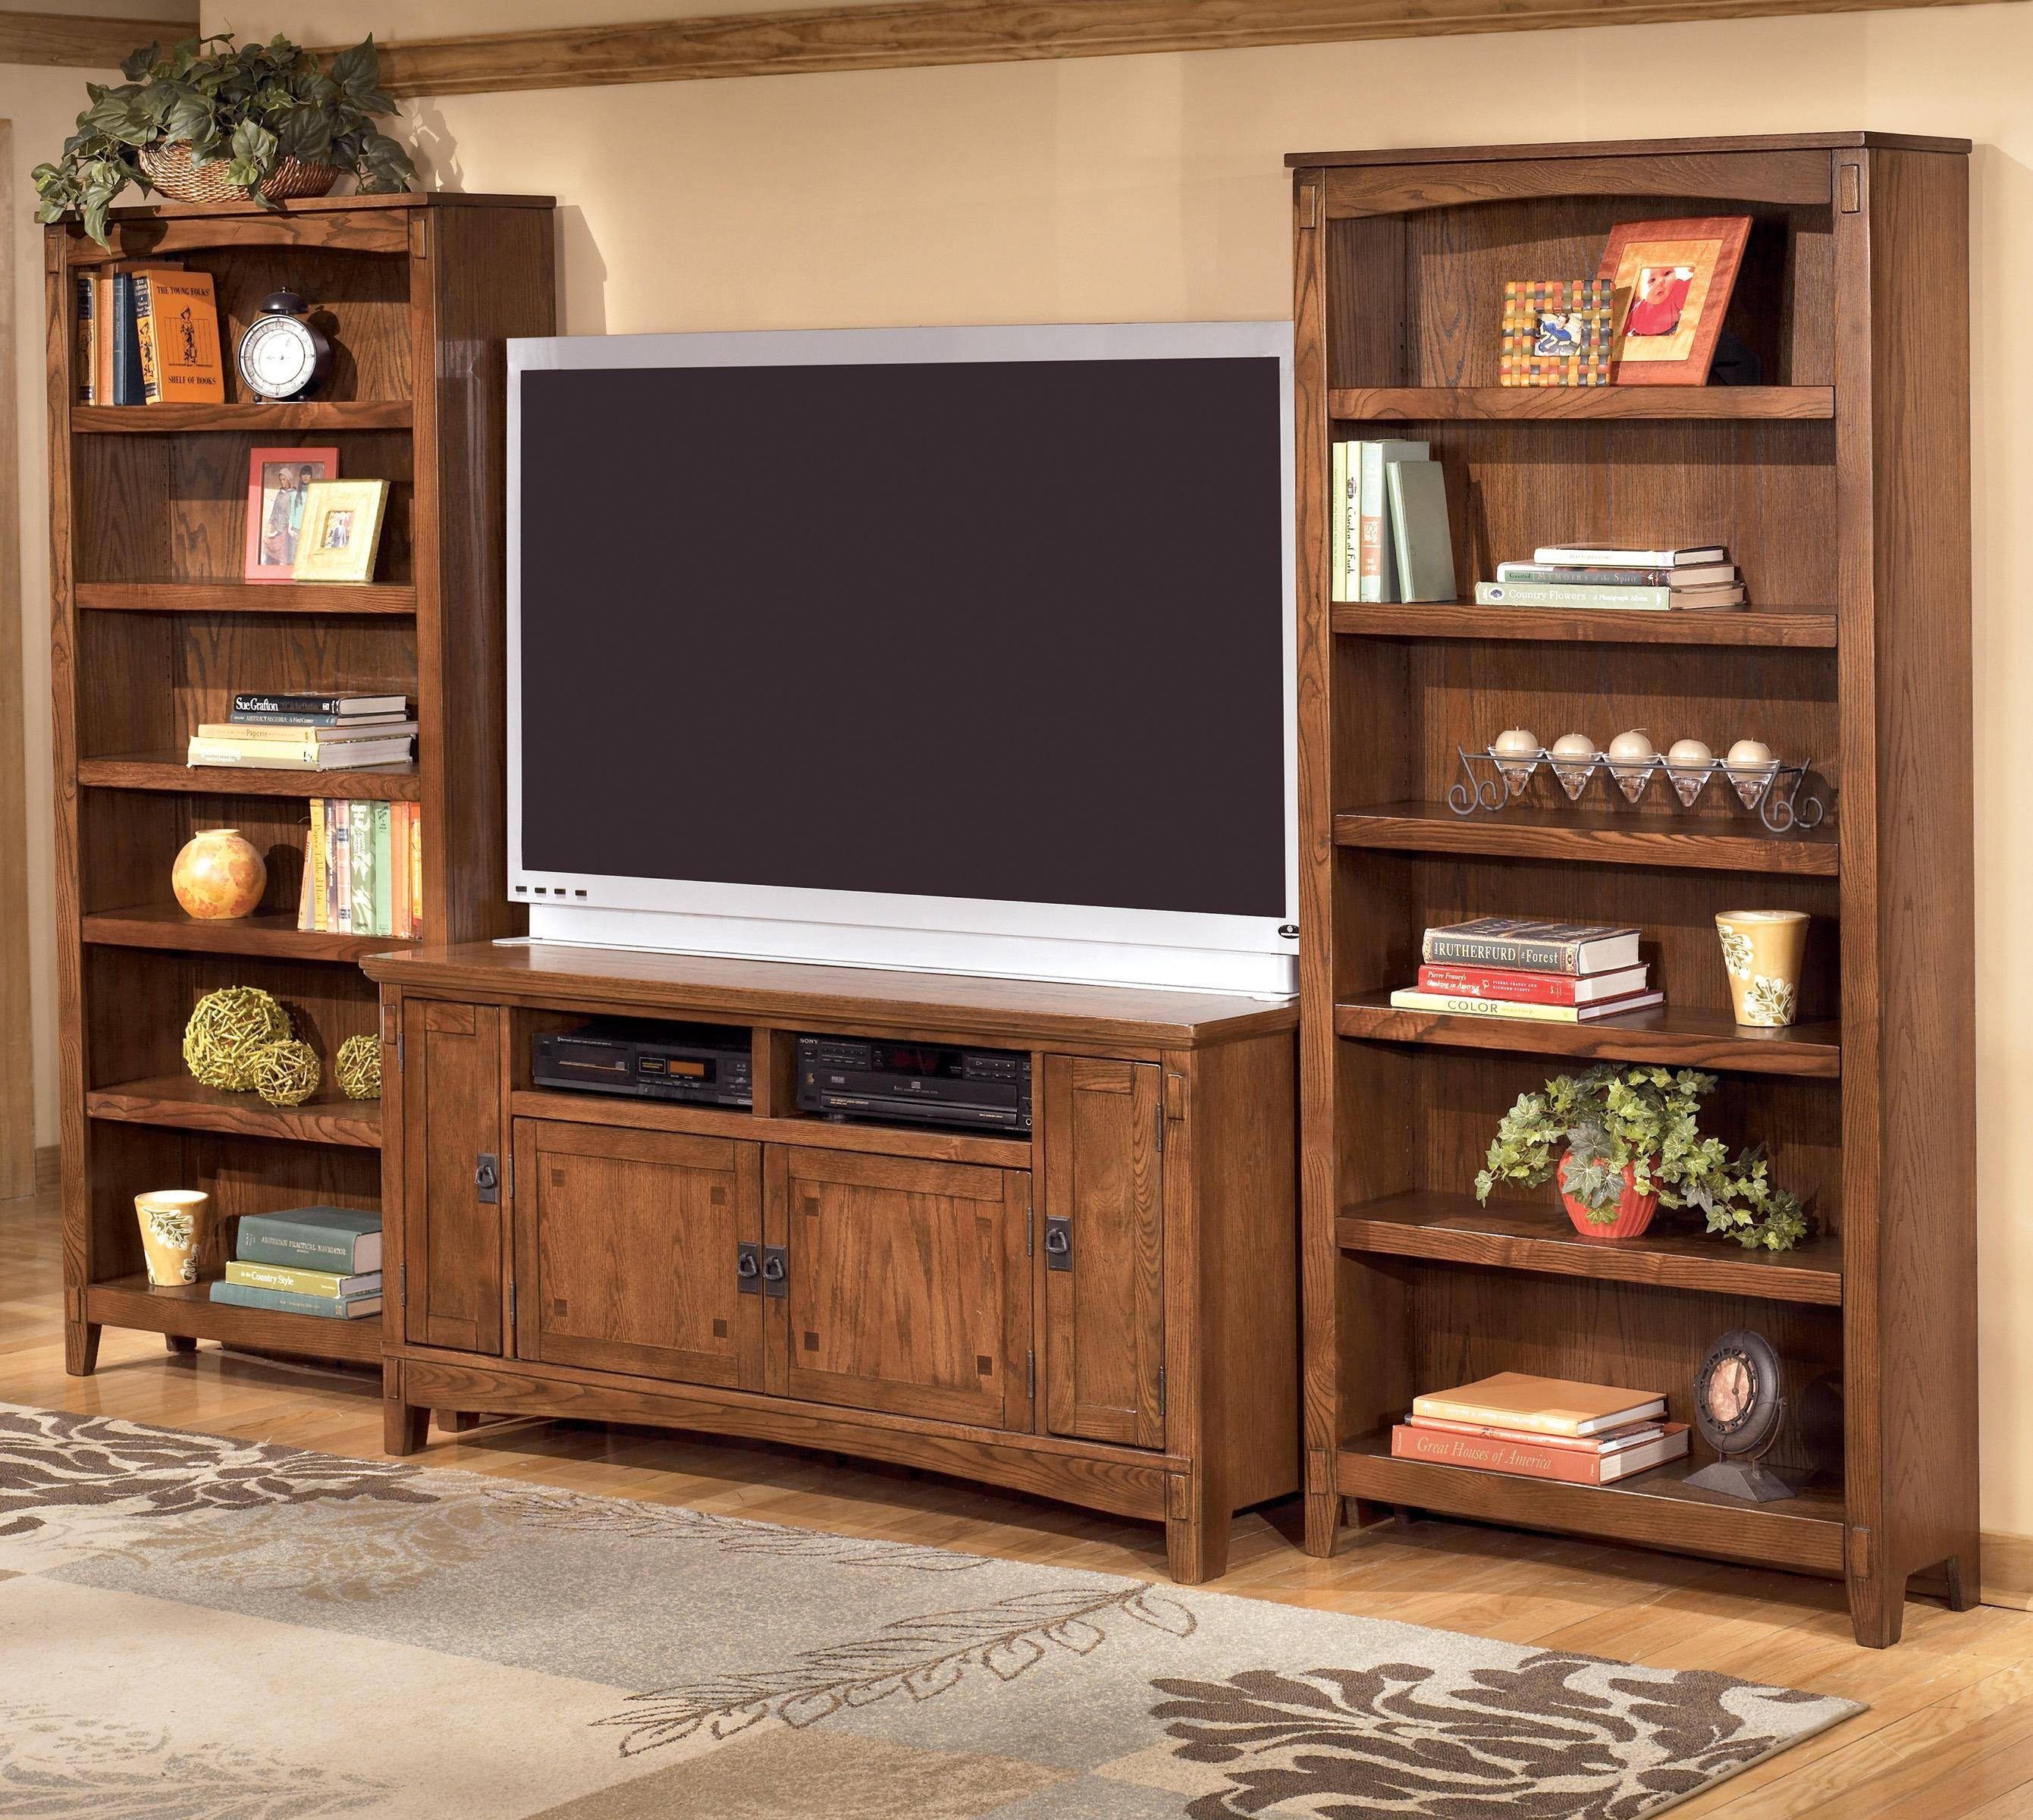 Ashley Furniture Cross Island 60 Inch Tv Stand & 2 Large Bookcases regarding Tv Stands With Matching Bookcases (Image 2 of 15)